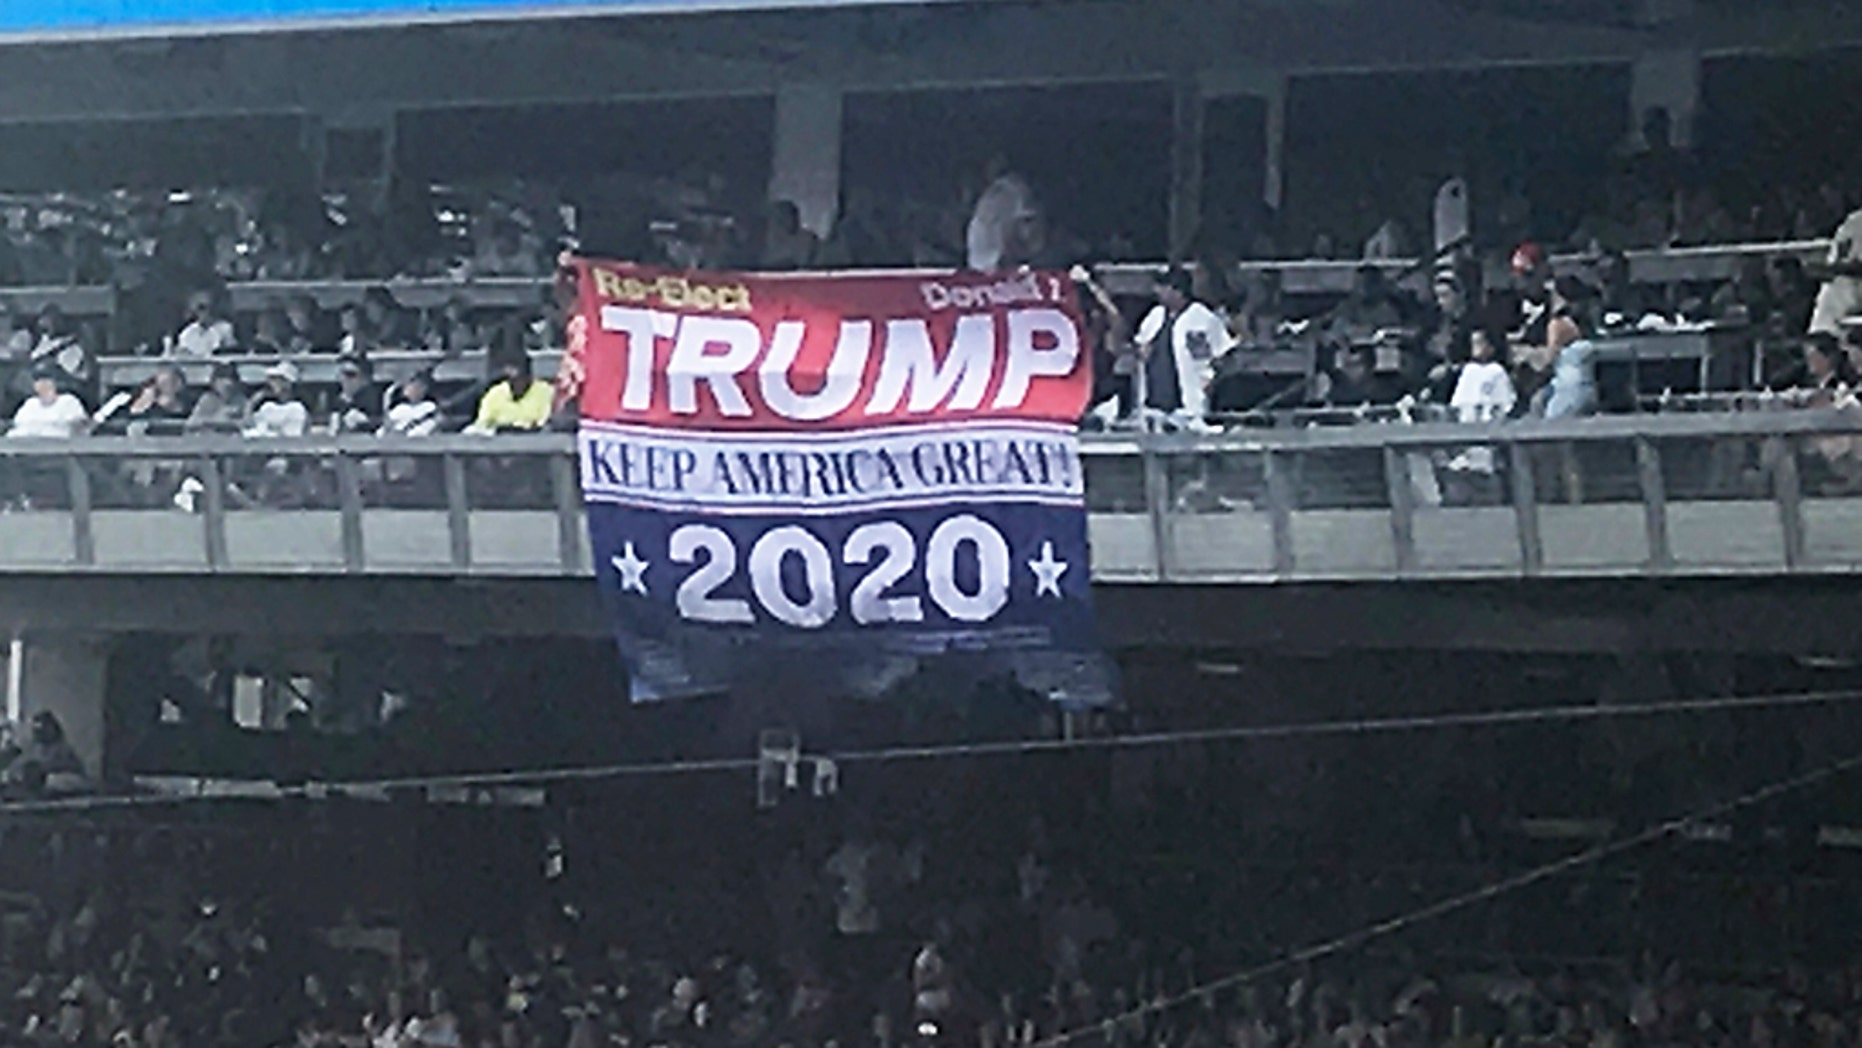 """A huge """"Trump 2020"""" banner was unfurled at the New York Yankees game in the Bronx on Sunday."""